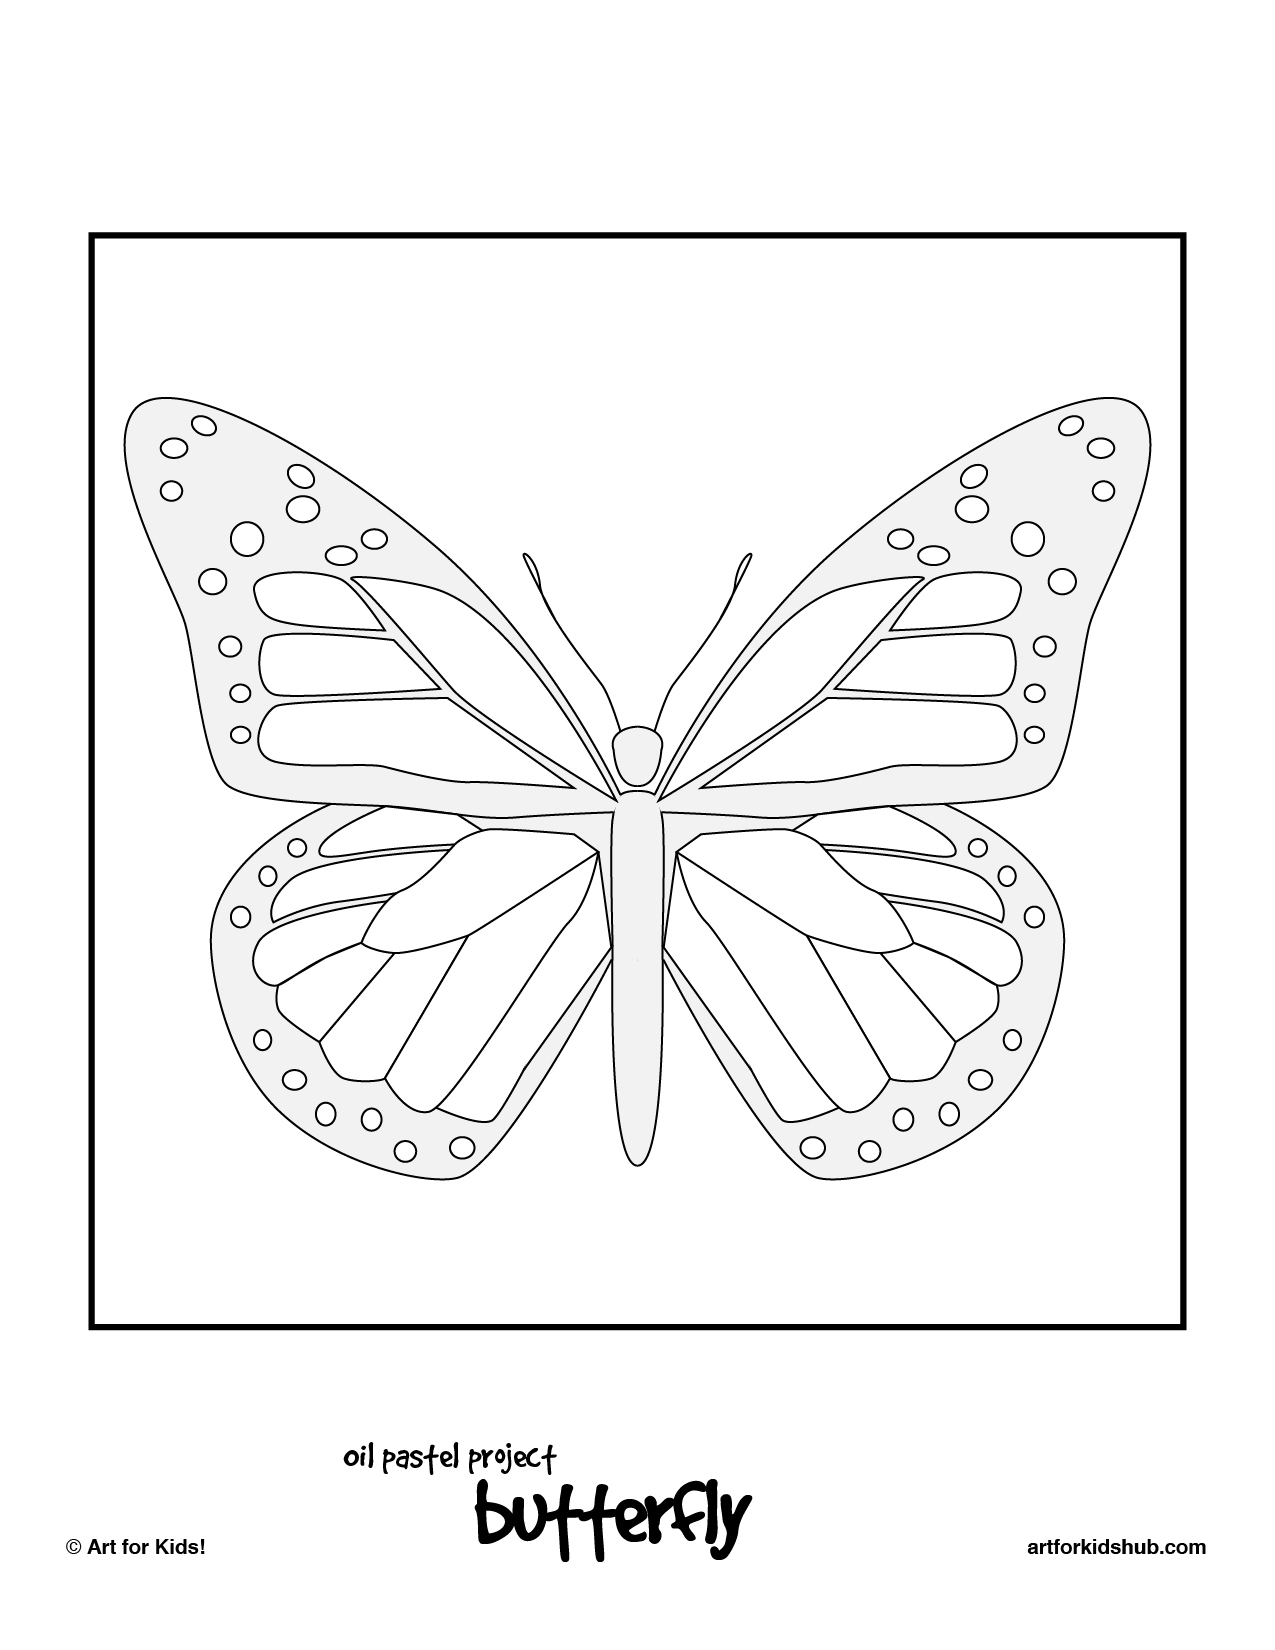 Printables Monarch Butterfly Worksheets printables monarch butterfly worksheets safarmediapps oil pastel art project for kids hub download and print